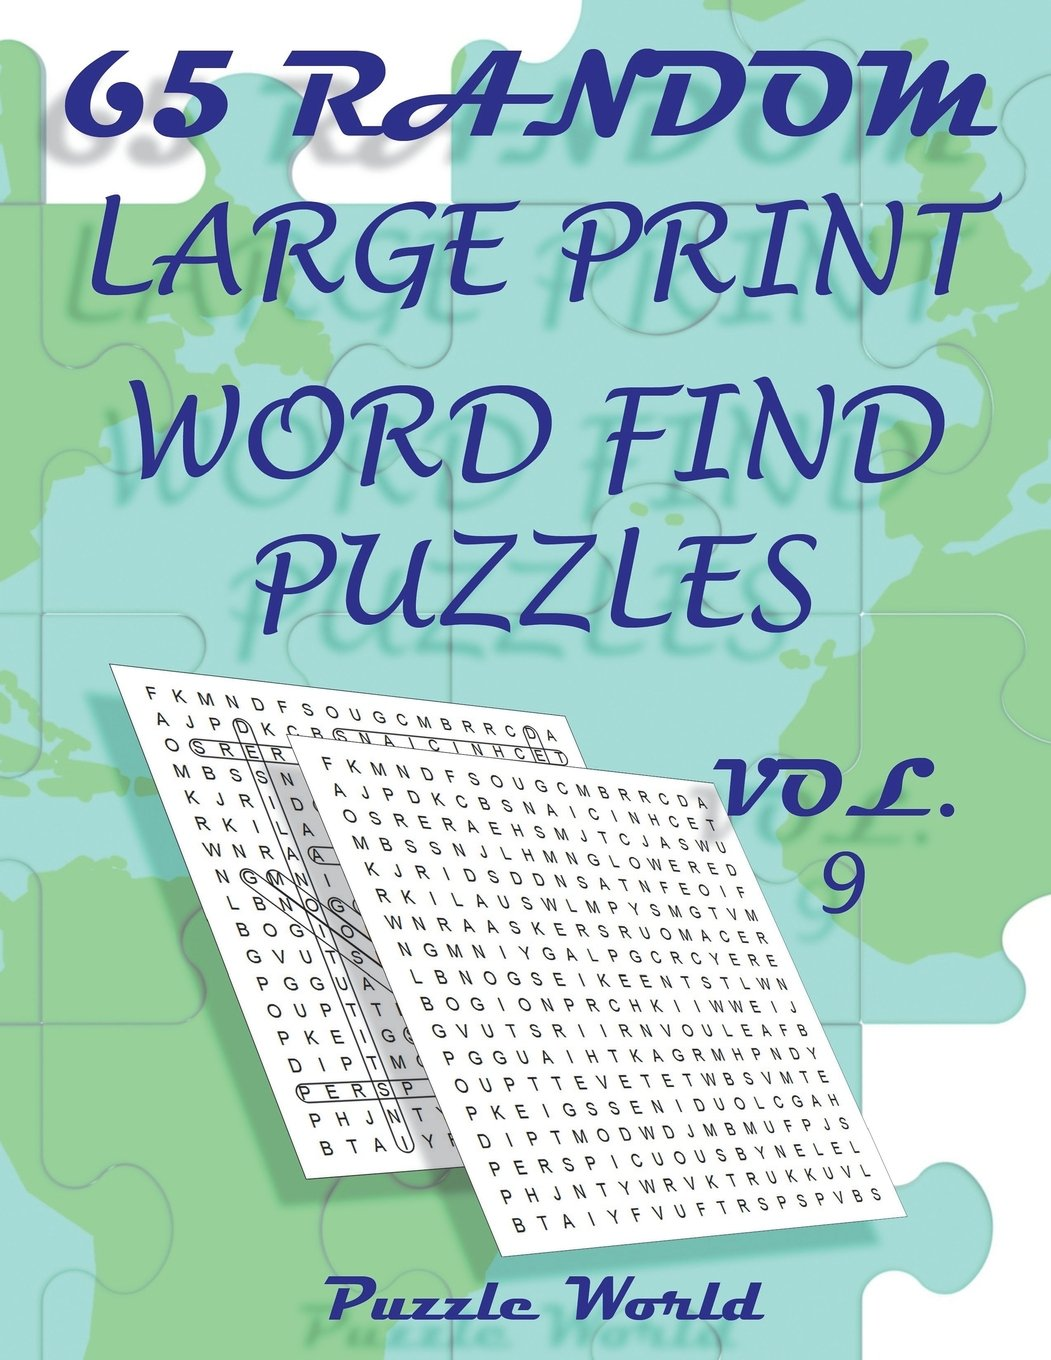 Download Puzzle World 65 Random Large Print Word Find Puzzles - Volume 9: Brain Games for Your Mind (Fun Word Search Book Series) ebook